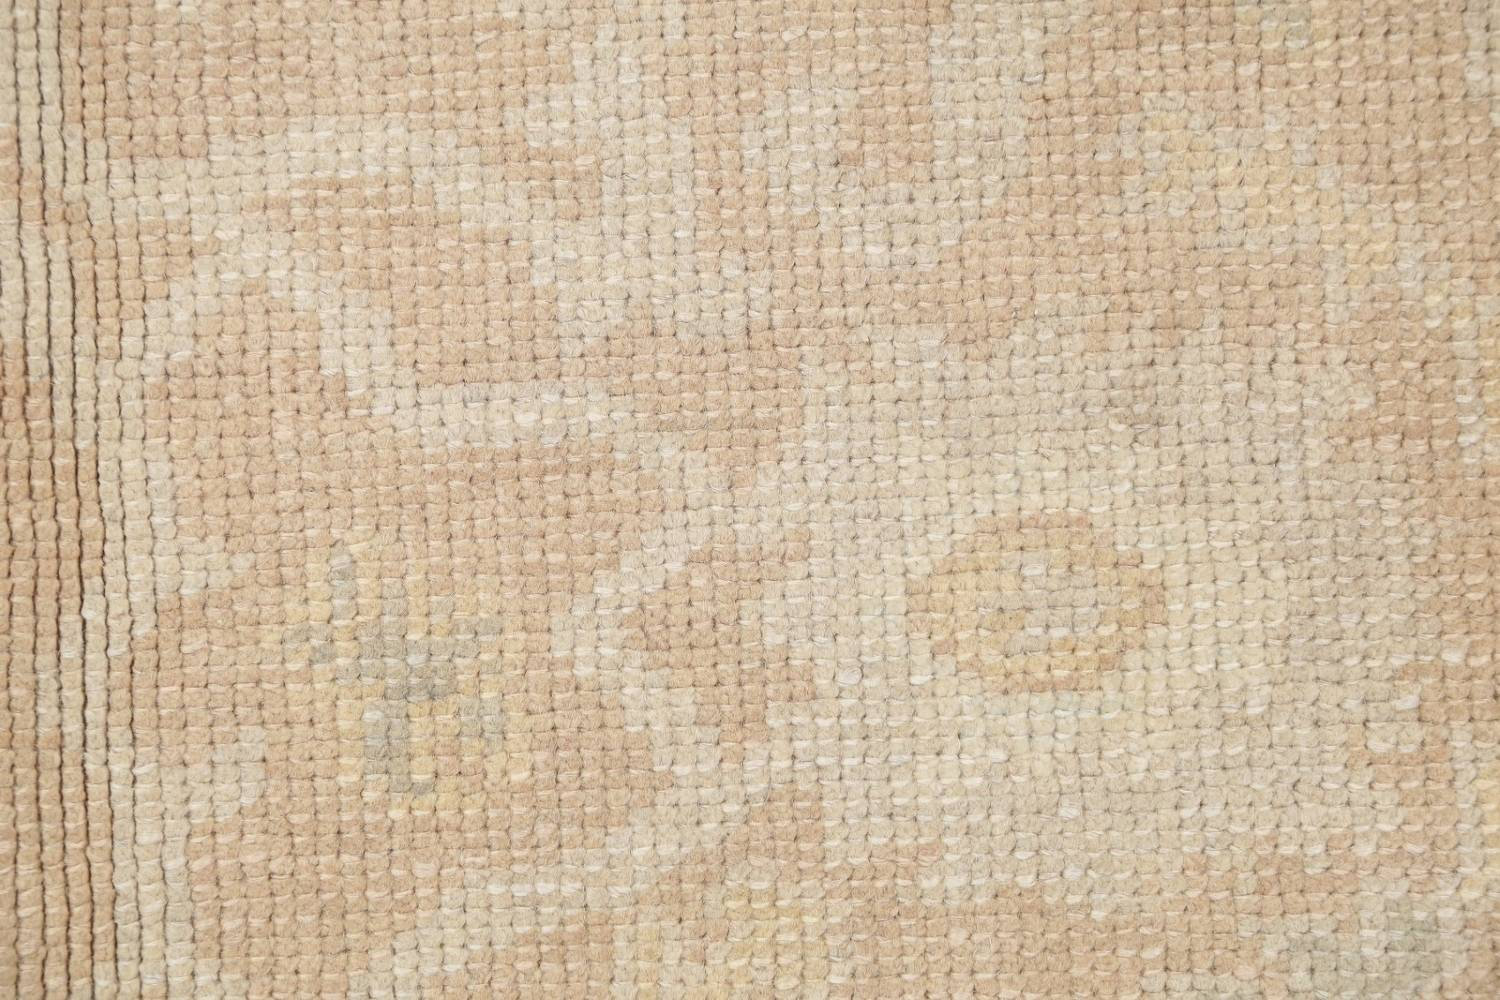 Vegetable Dye Muted Gold Oushak Turkish Hand-Knotted Area Rug 4x5 image 4